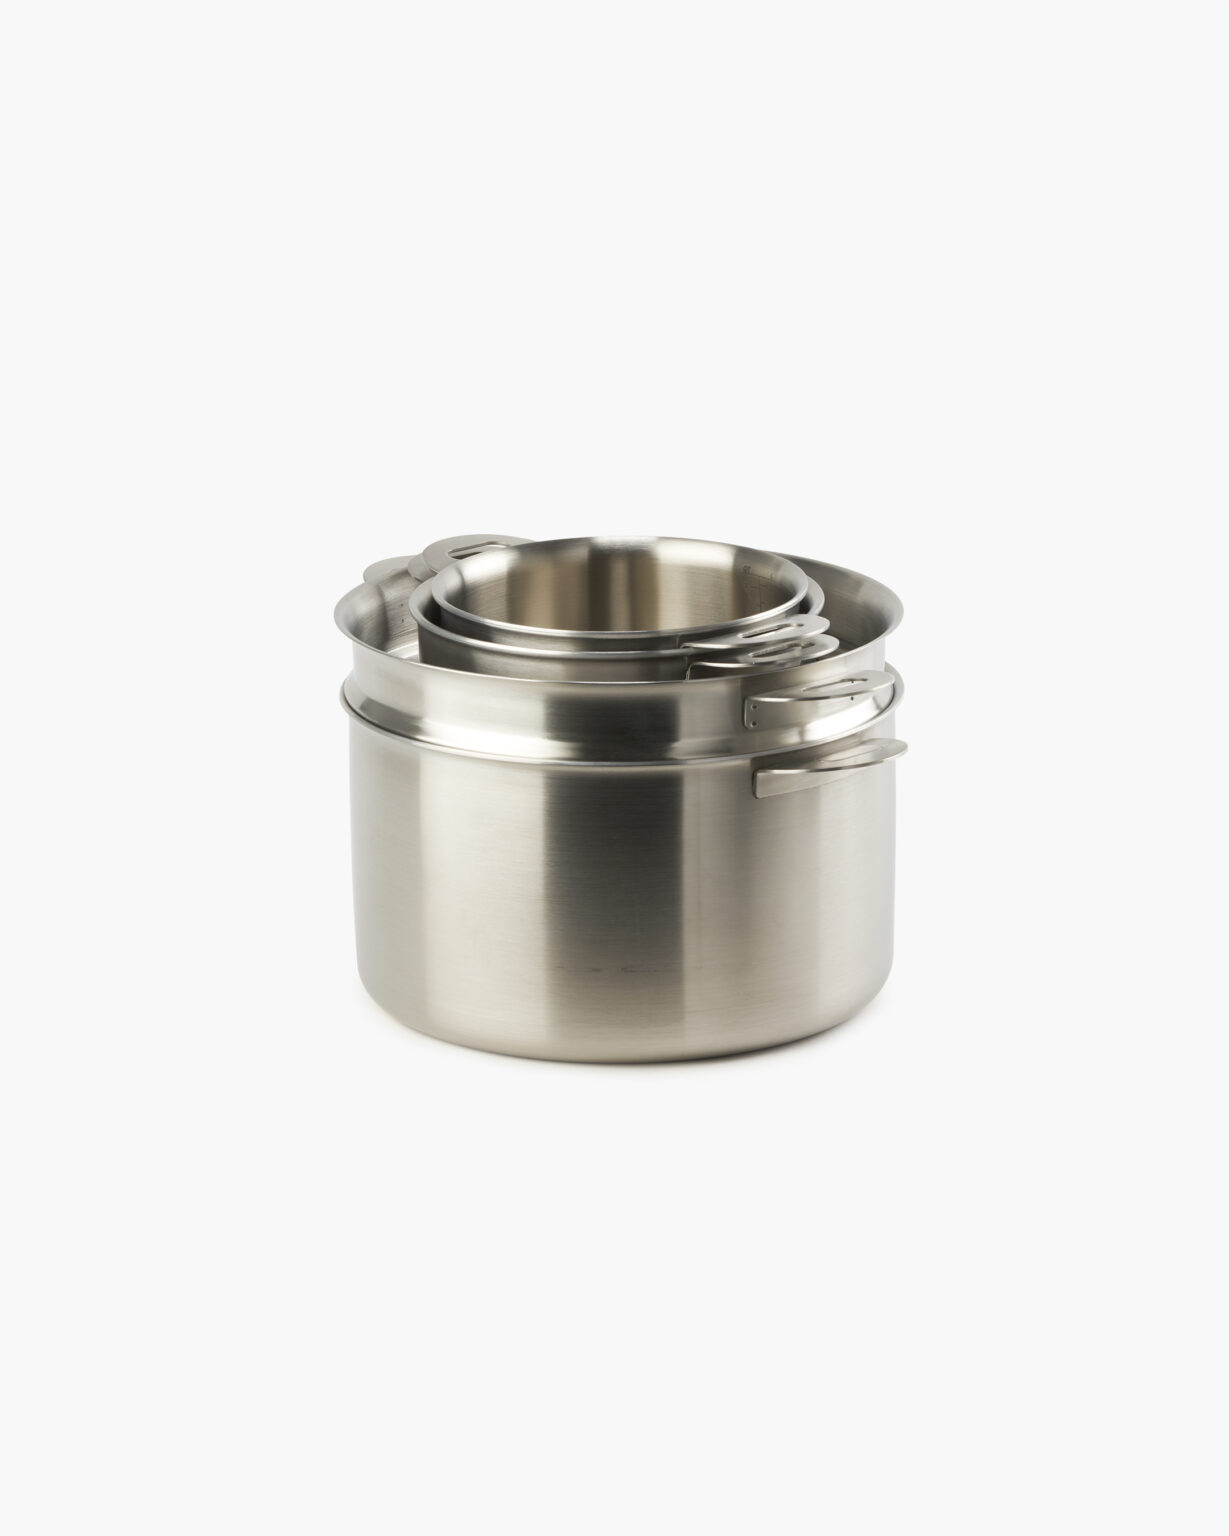 ENSEMBL Stackware Classic4 Stainless Steel Fully Clad Cookware